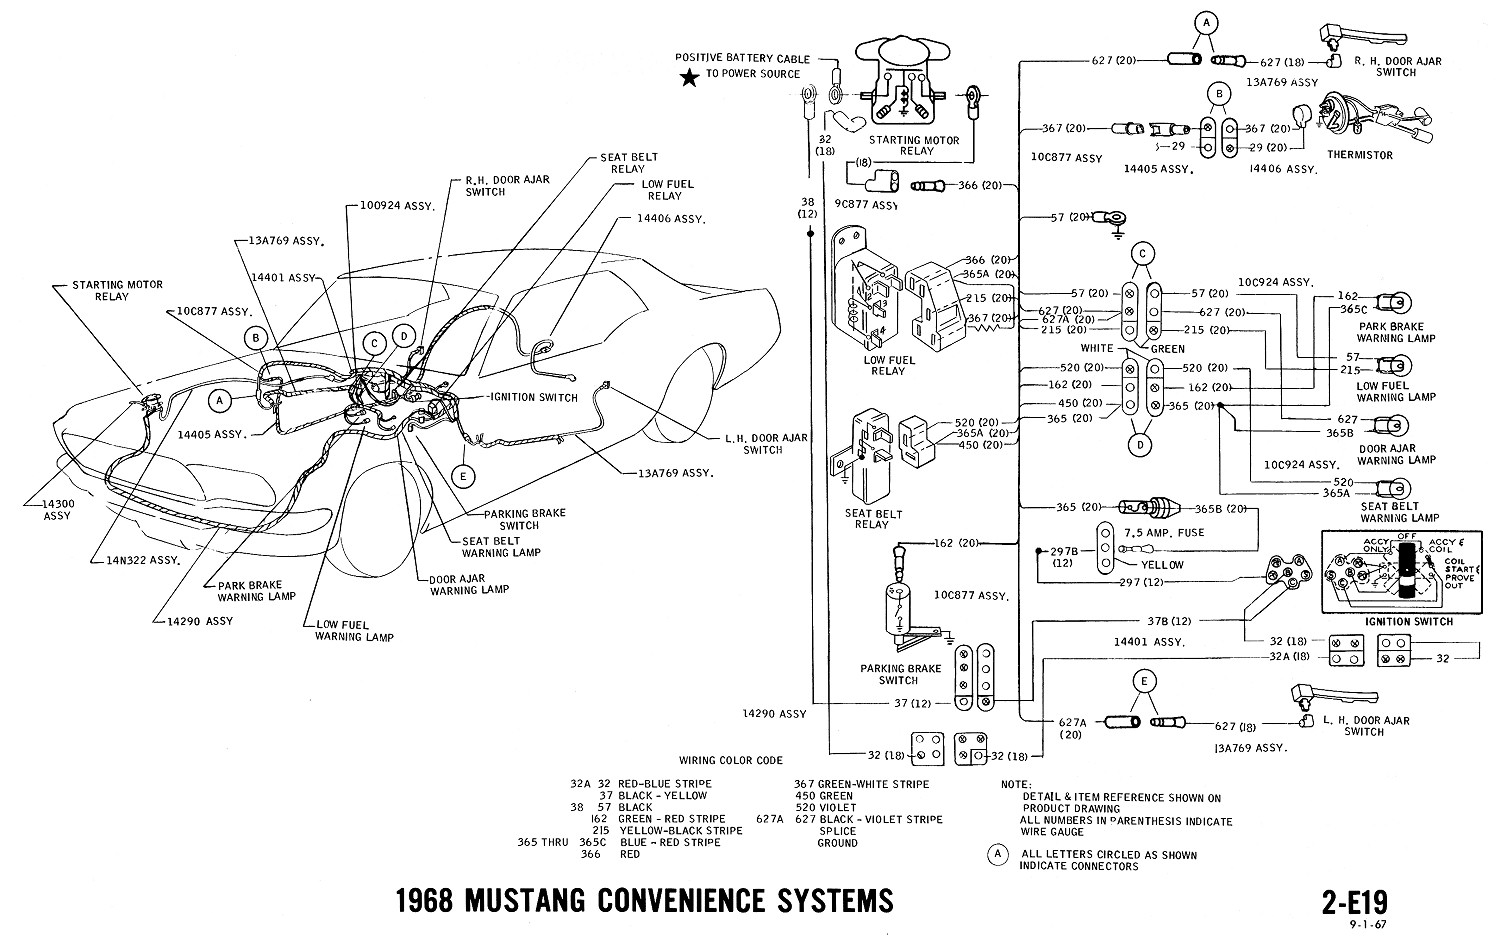 hight resolution of 1969 ford mustang engine wiring diagram wiring diagrams 69 mustang tachometer wiring diagram 69 mustang wiring diagram